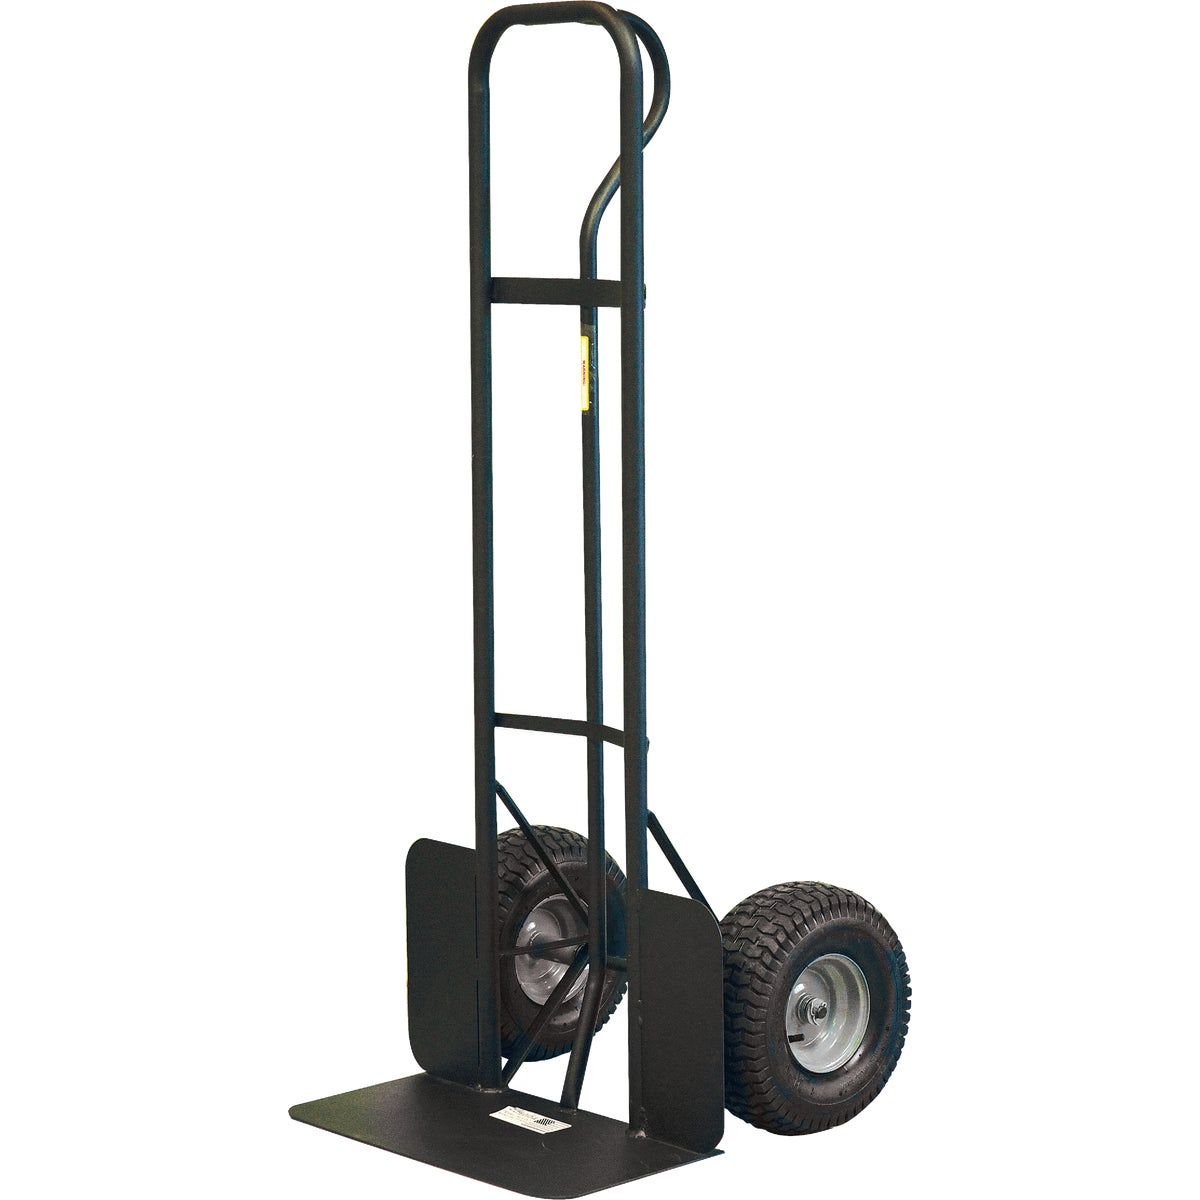 INDUSTRIAL HAND TRUCK - 49977 by Gleason Indust Prod